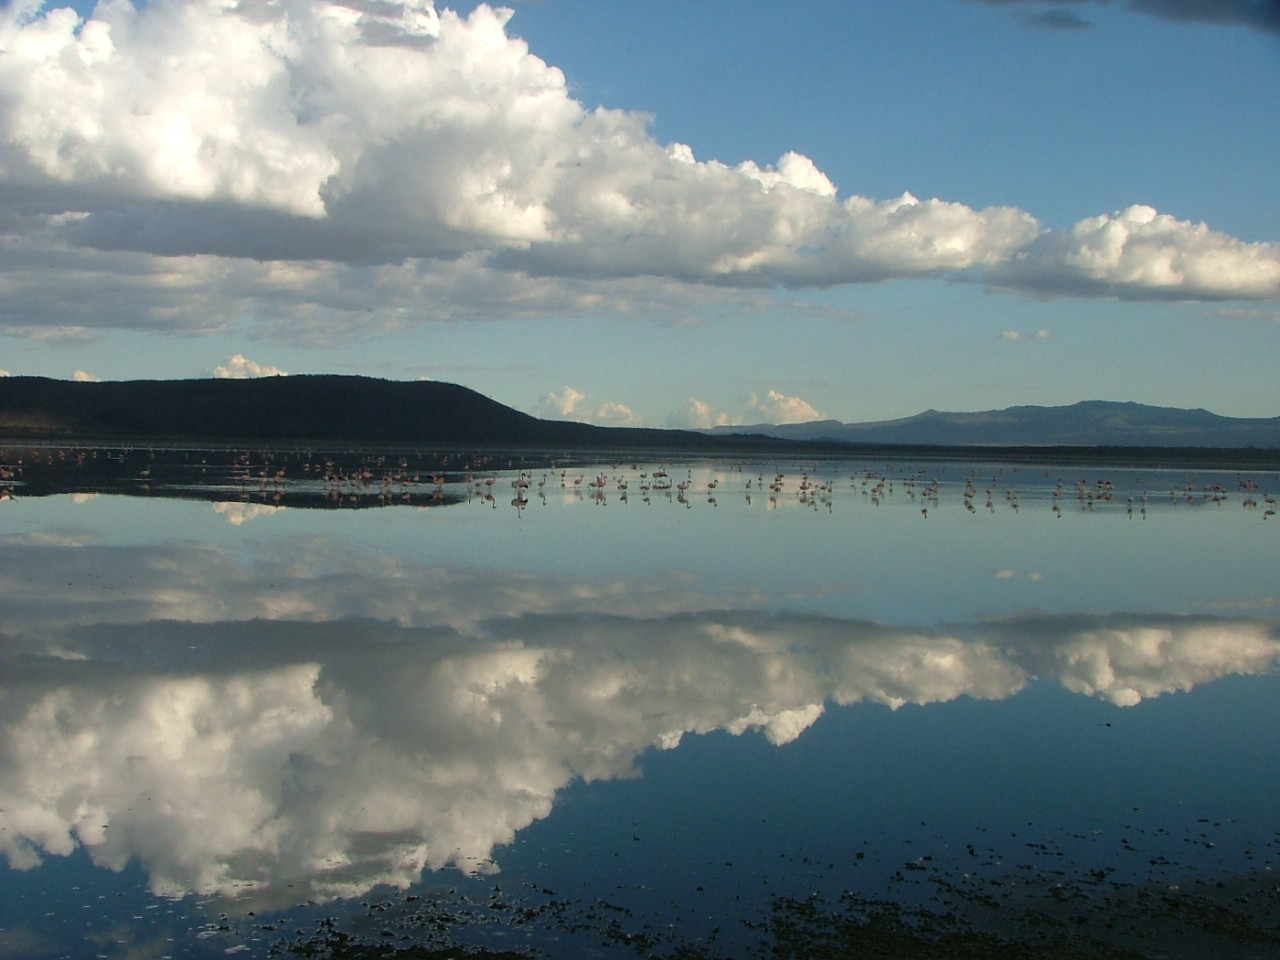 Flamingos and cloudy sky reflected in the clear waters of Lake Nakuru in the Lake Nakuru National Reserve in Kenya.